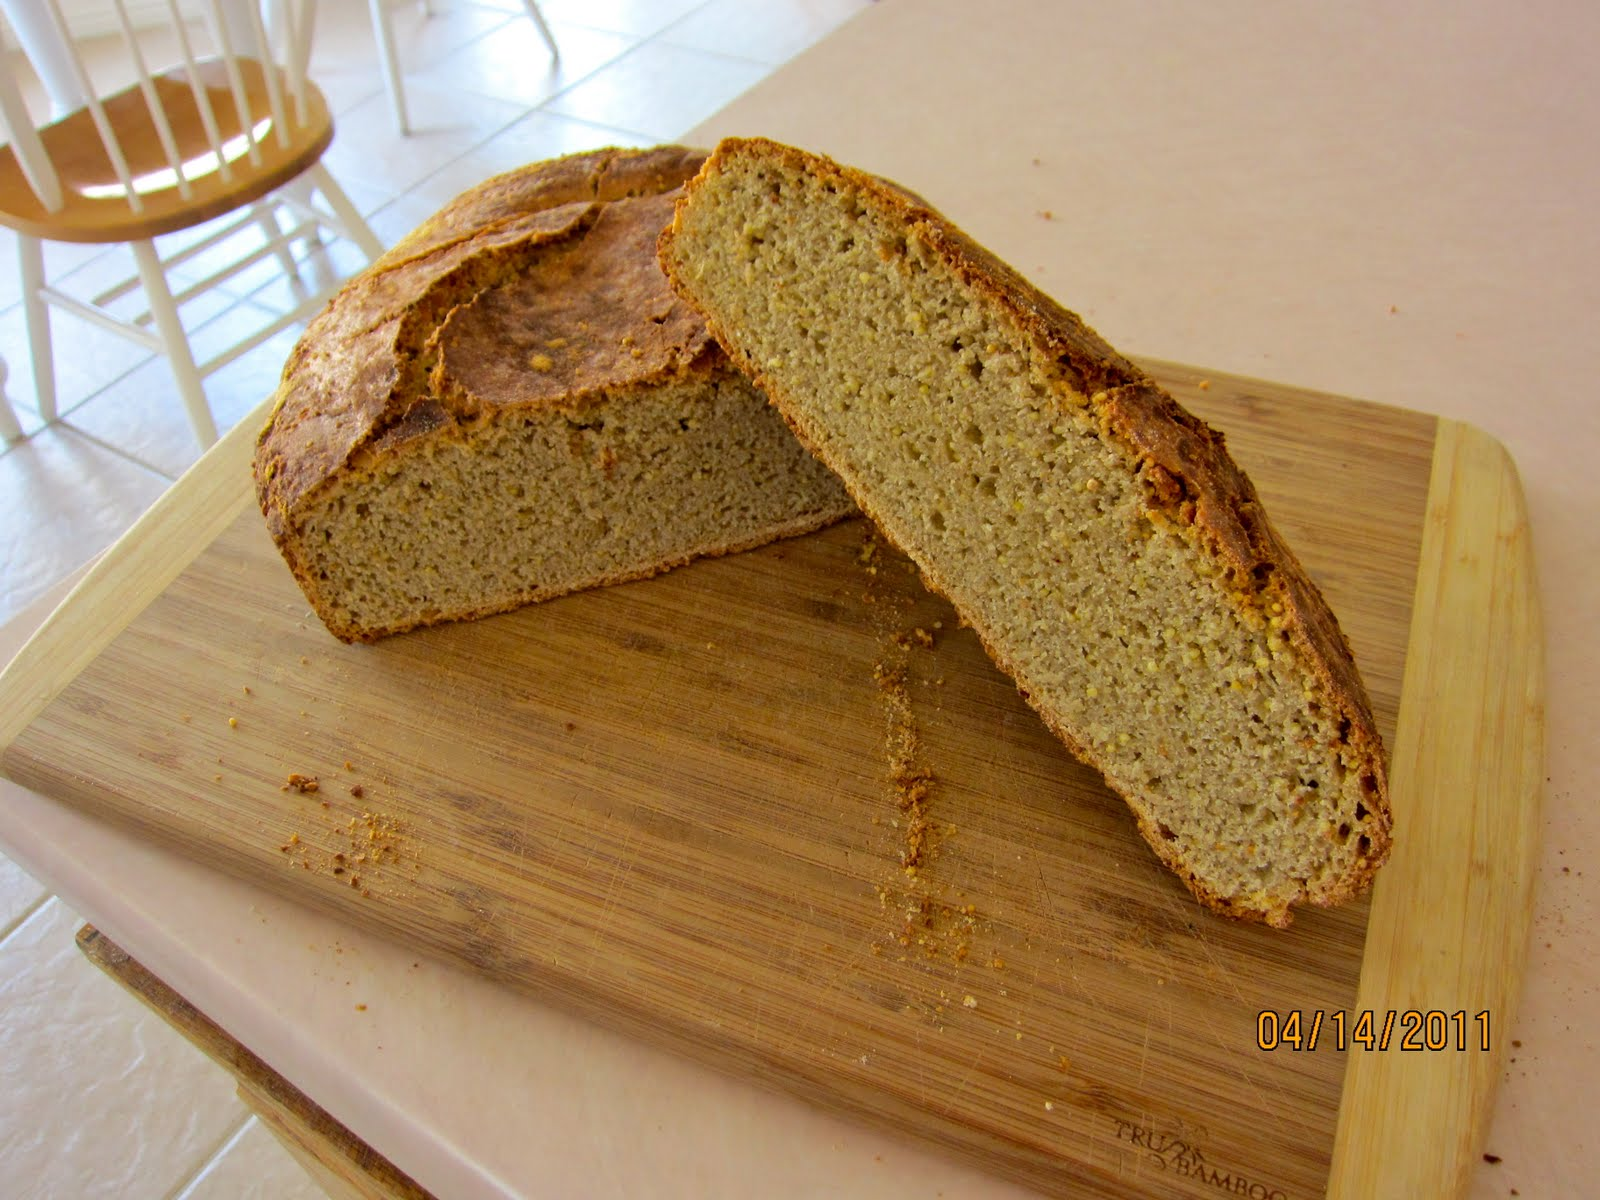 Misadventures of Mr Nut: 30% Whole Grain Bread- Sorghum, Oat, Millet